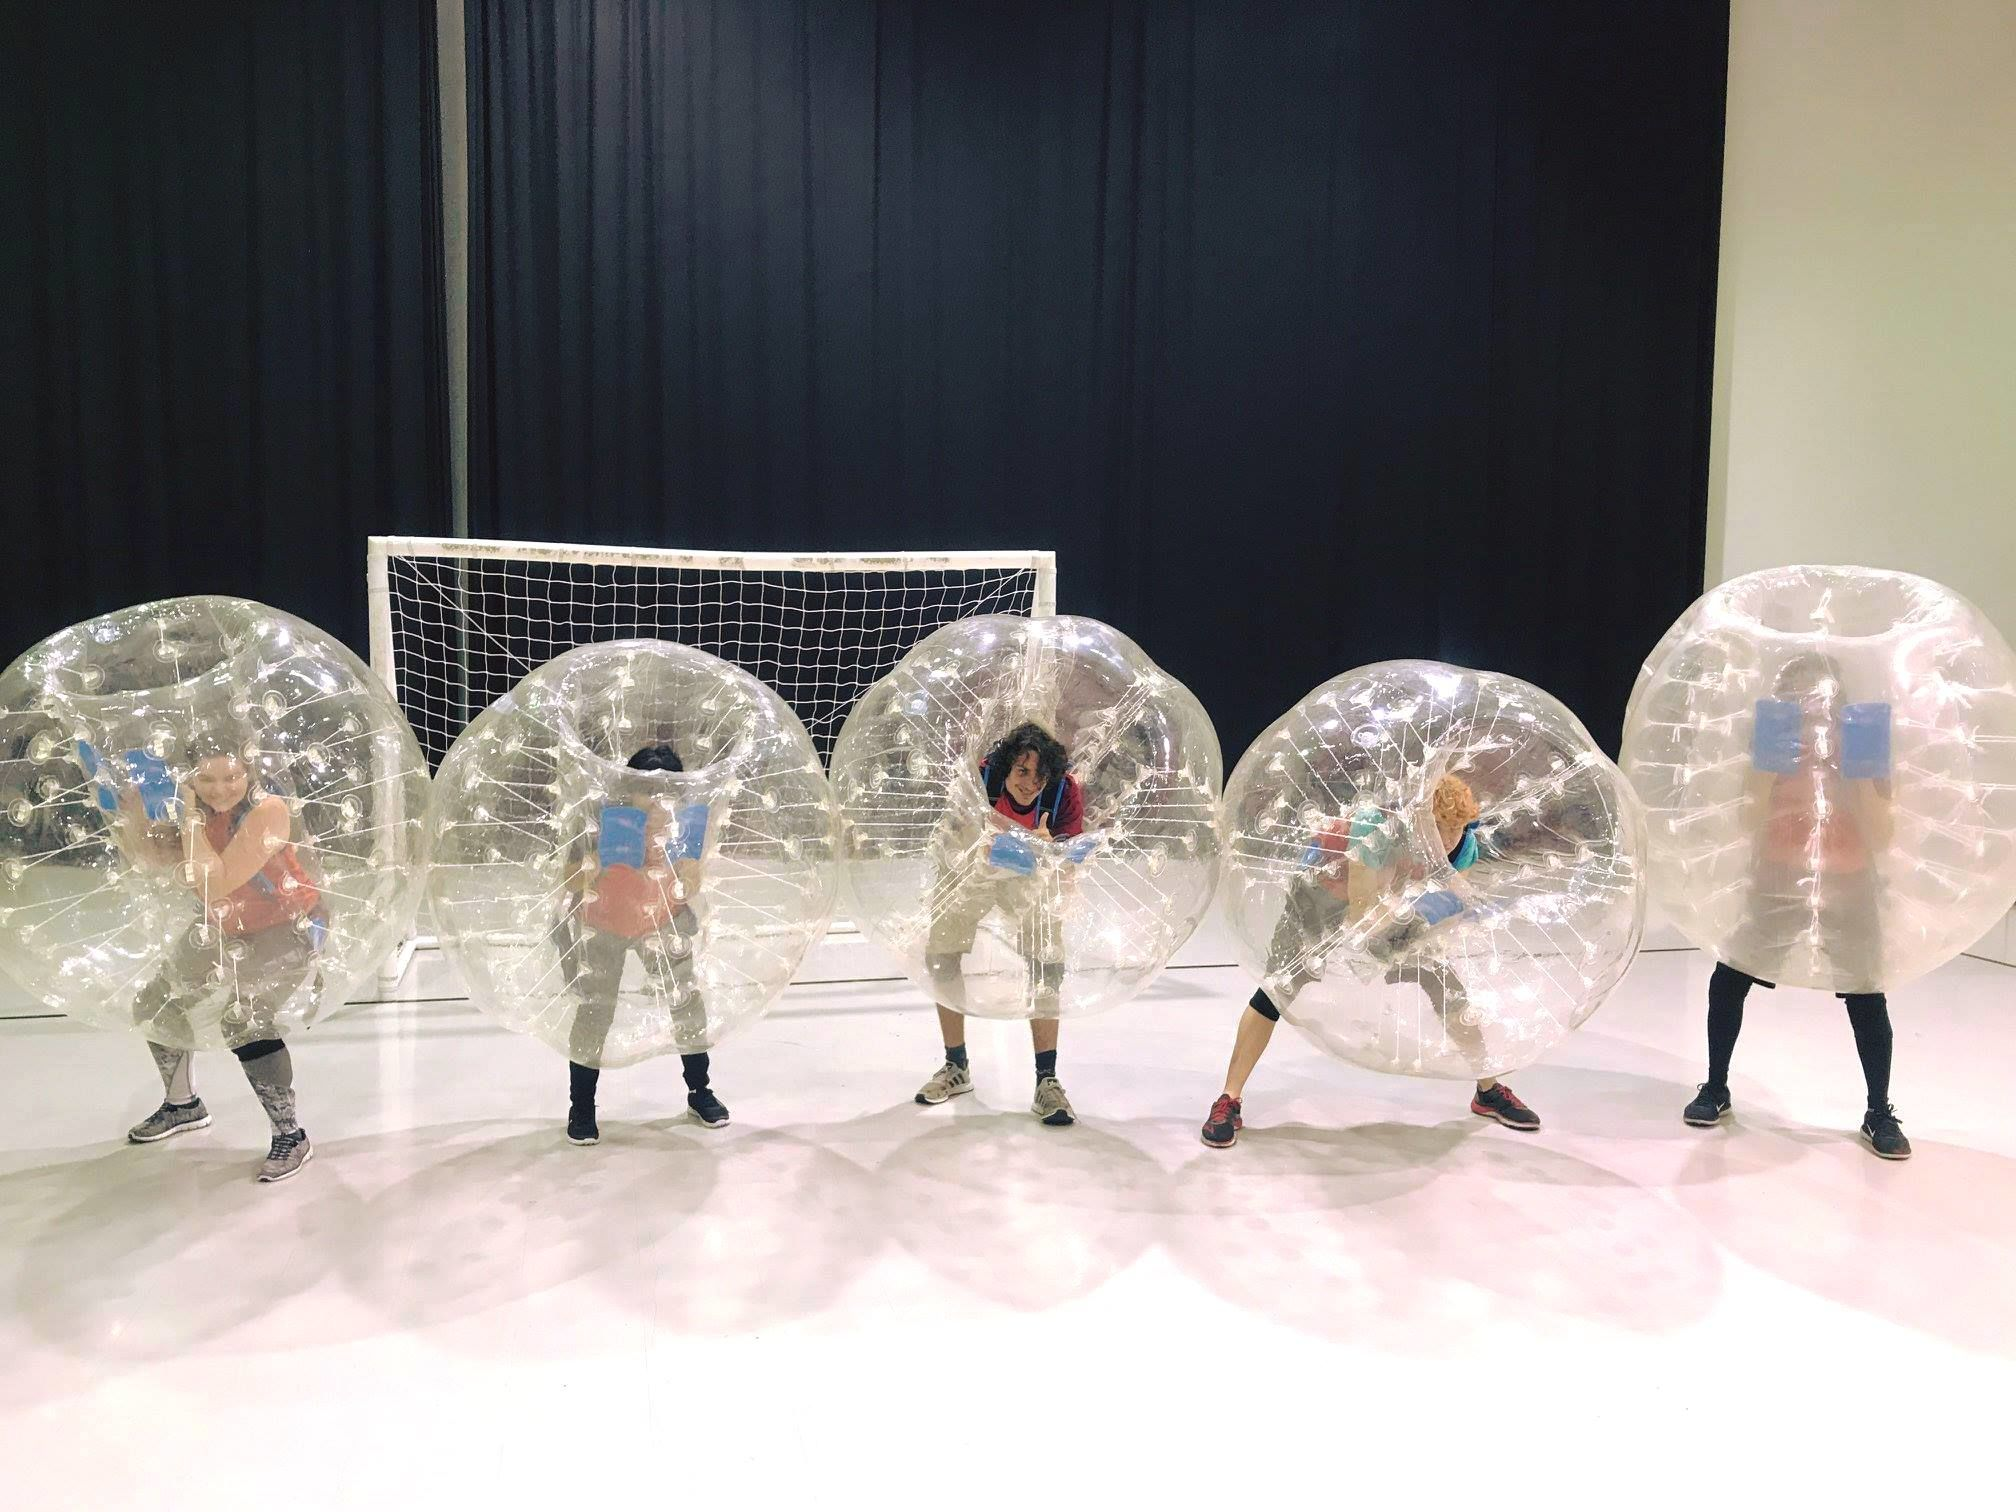 Five students at Temple University Japan stand inside large bubble balls.